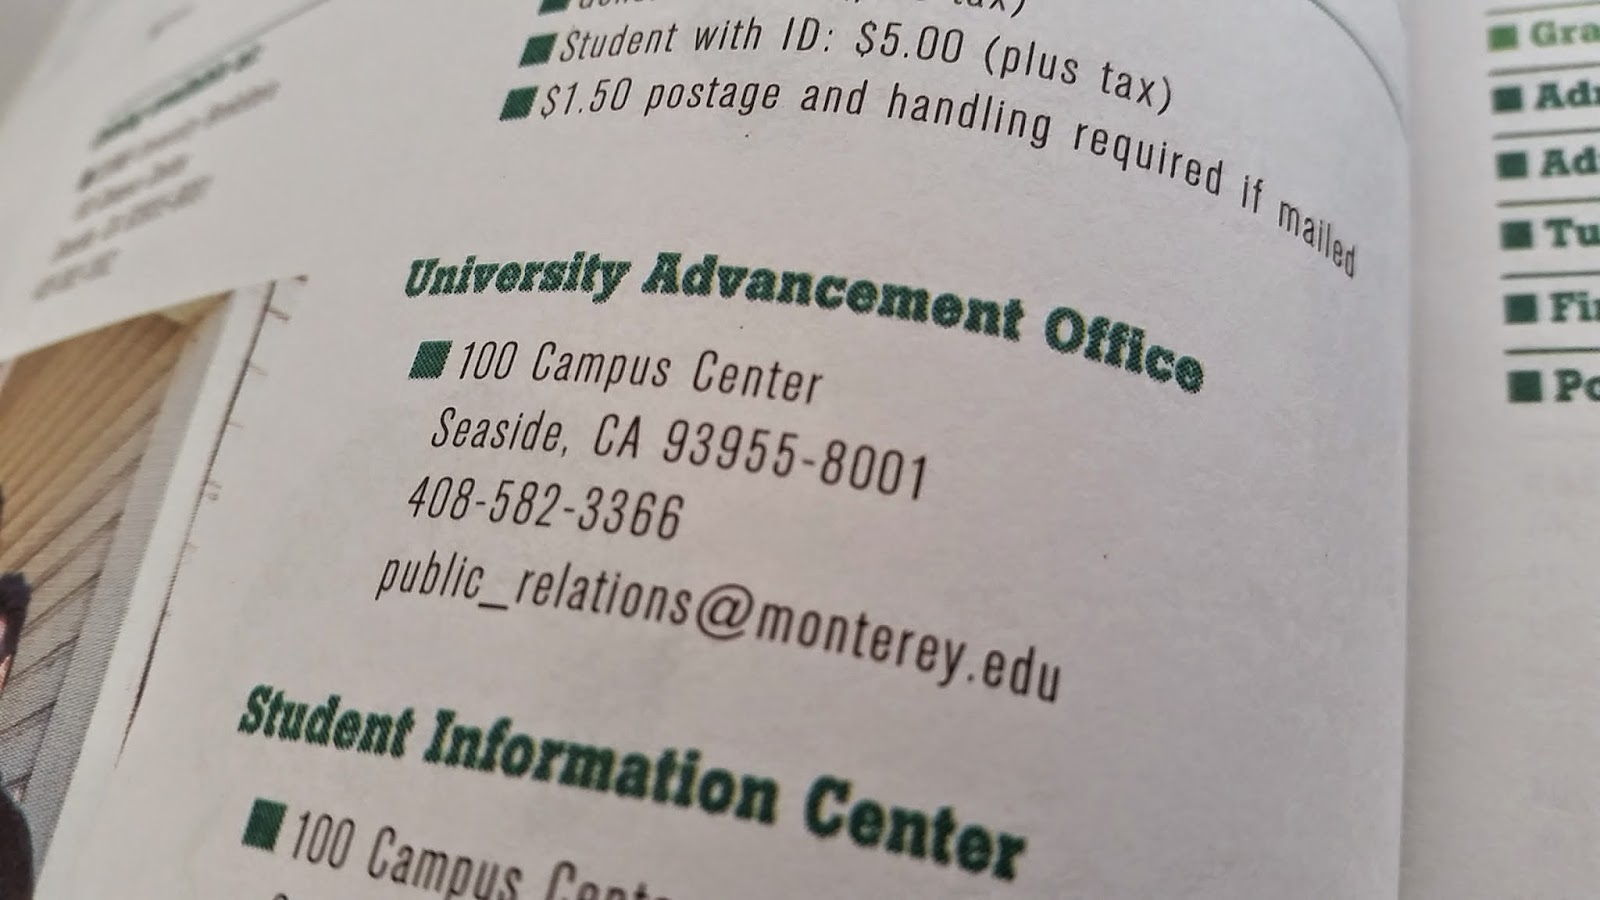 Page from 1997-1998 catalog showing the 100 Campus Center address.